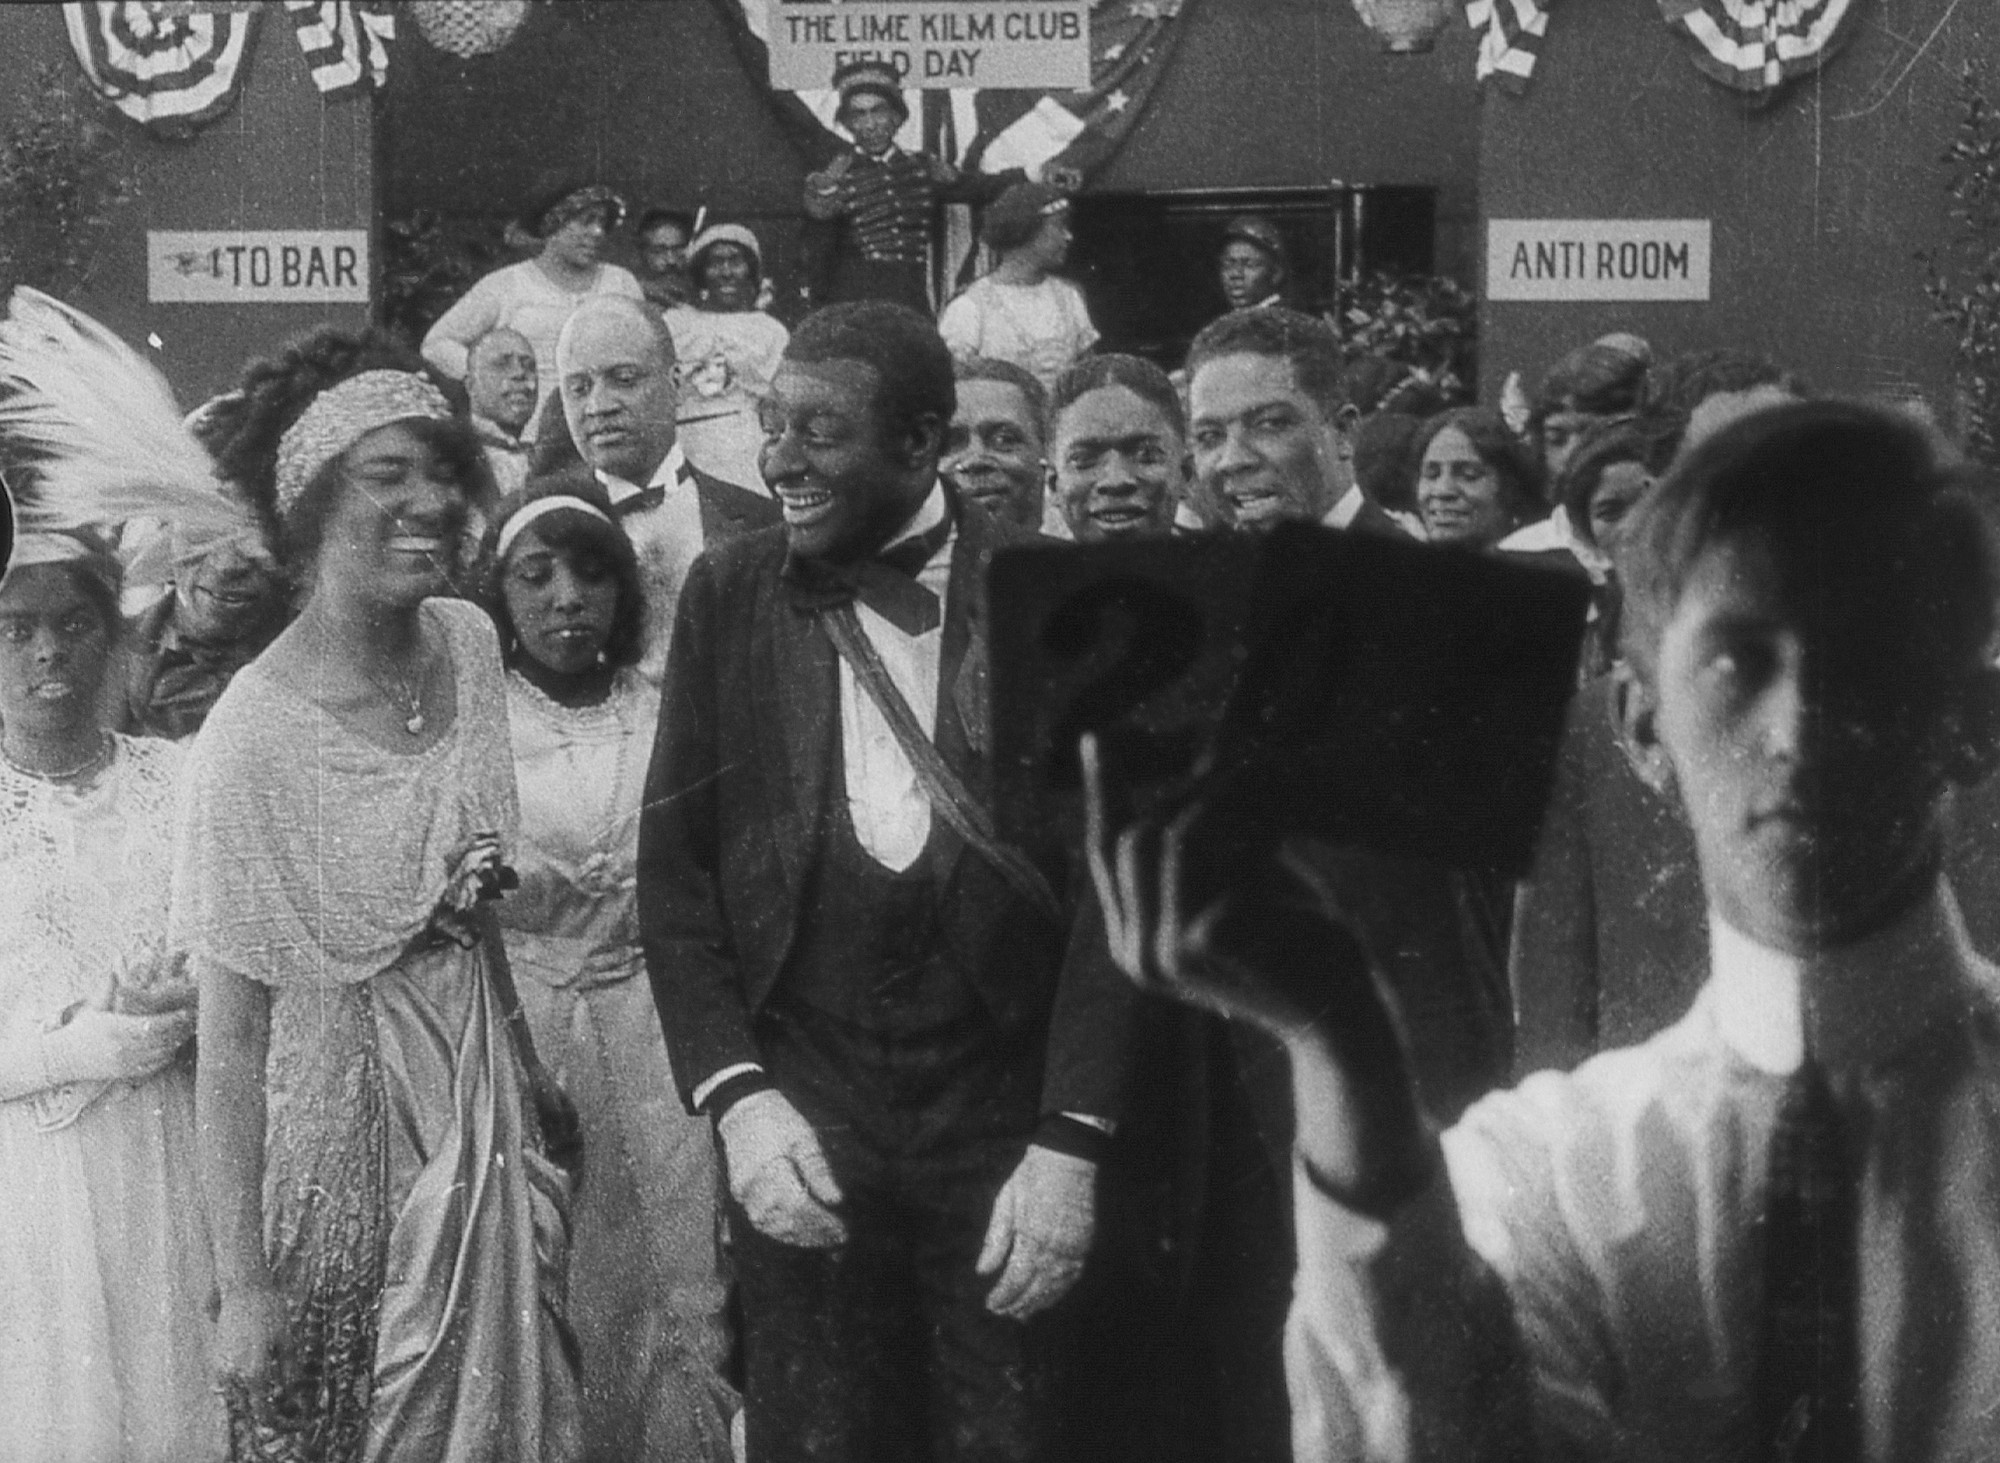 100 Years in Post-Production: Resurrecting a Lost Landmark of Black Film History | MoMA